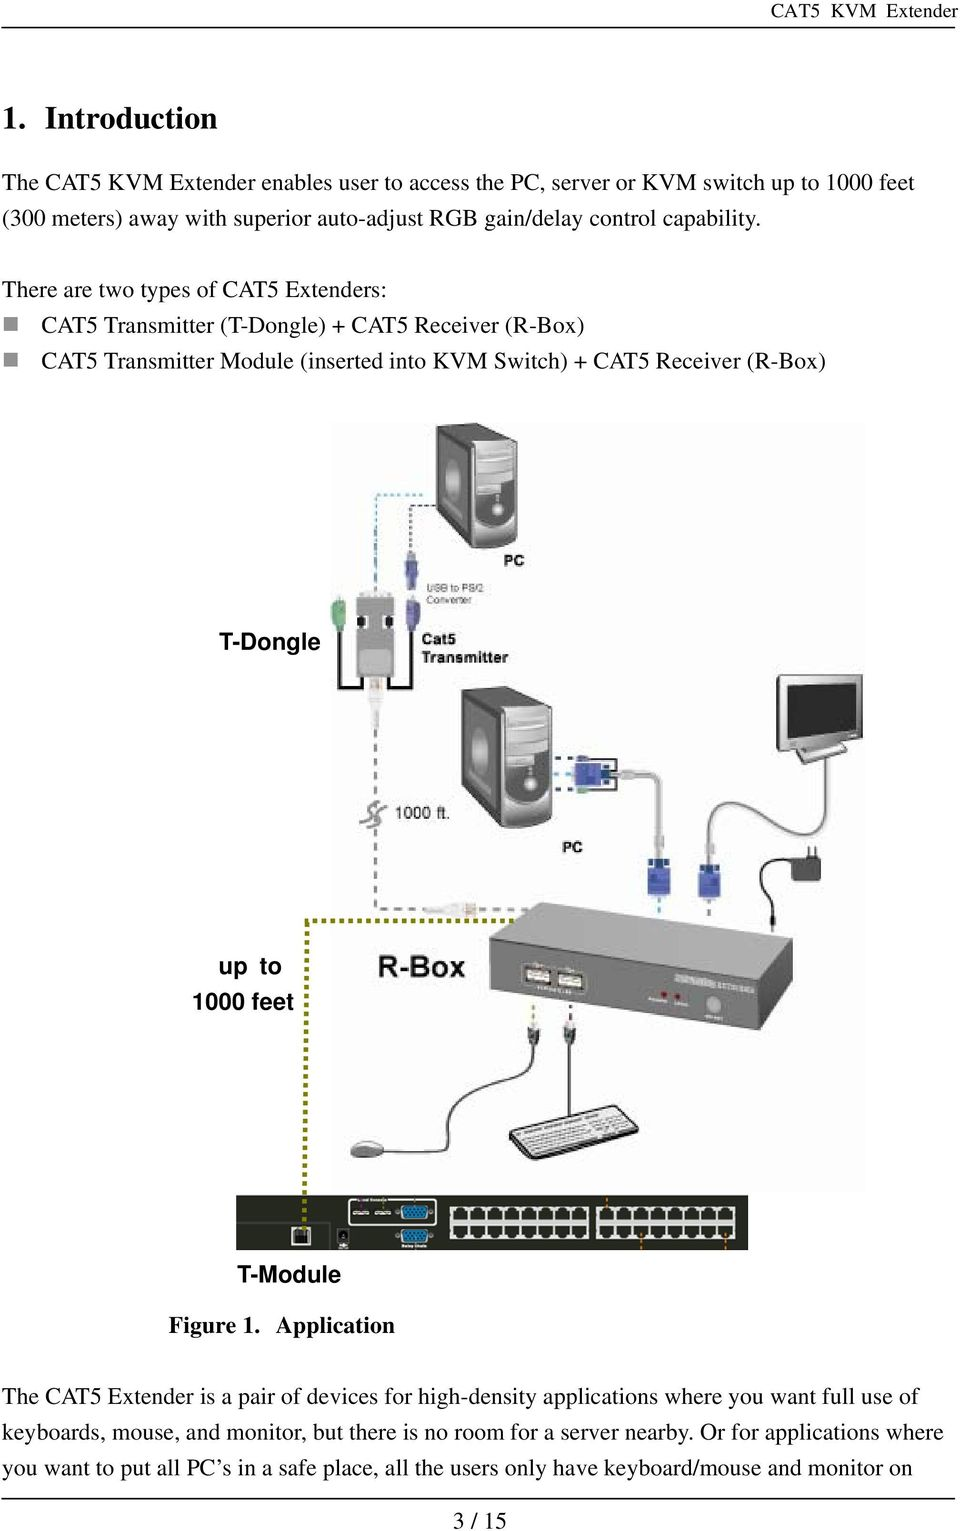 There are two types of CAT5 Extenders: CAT5 Transmitter (T-Dongle) +